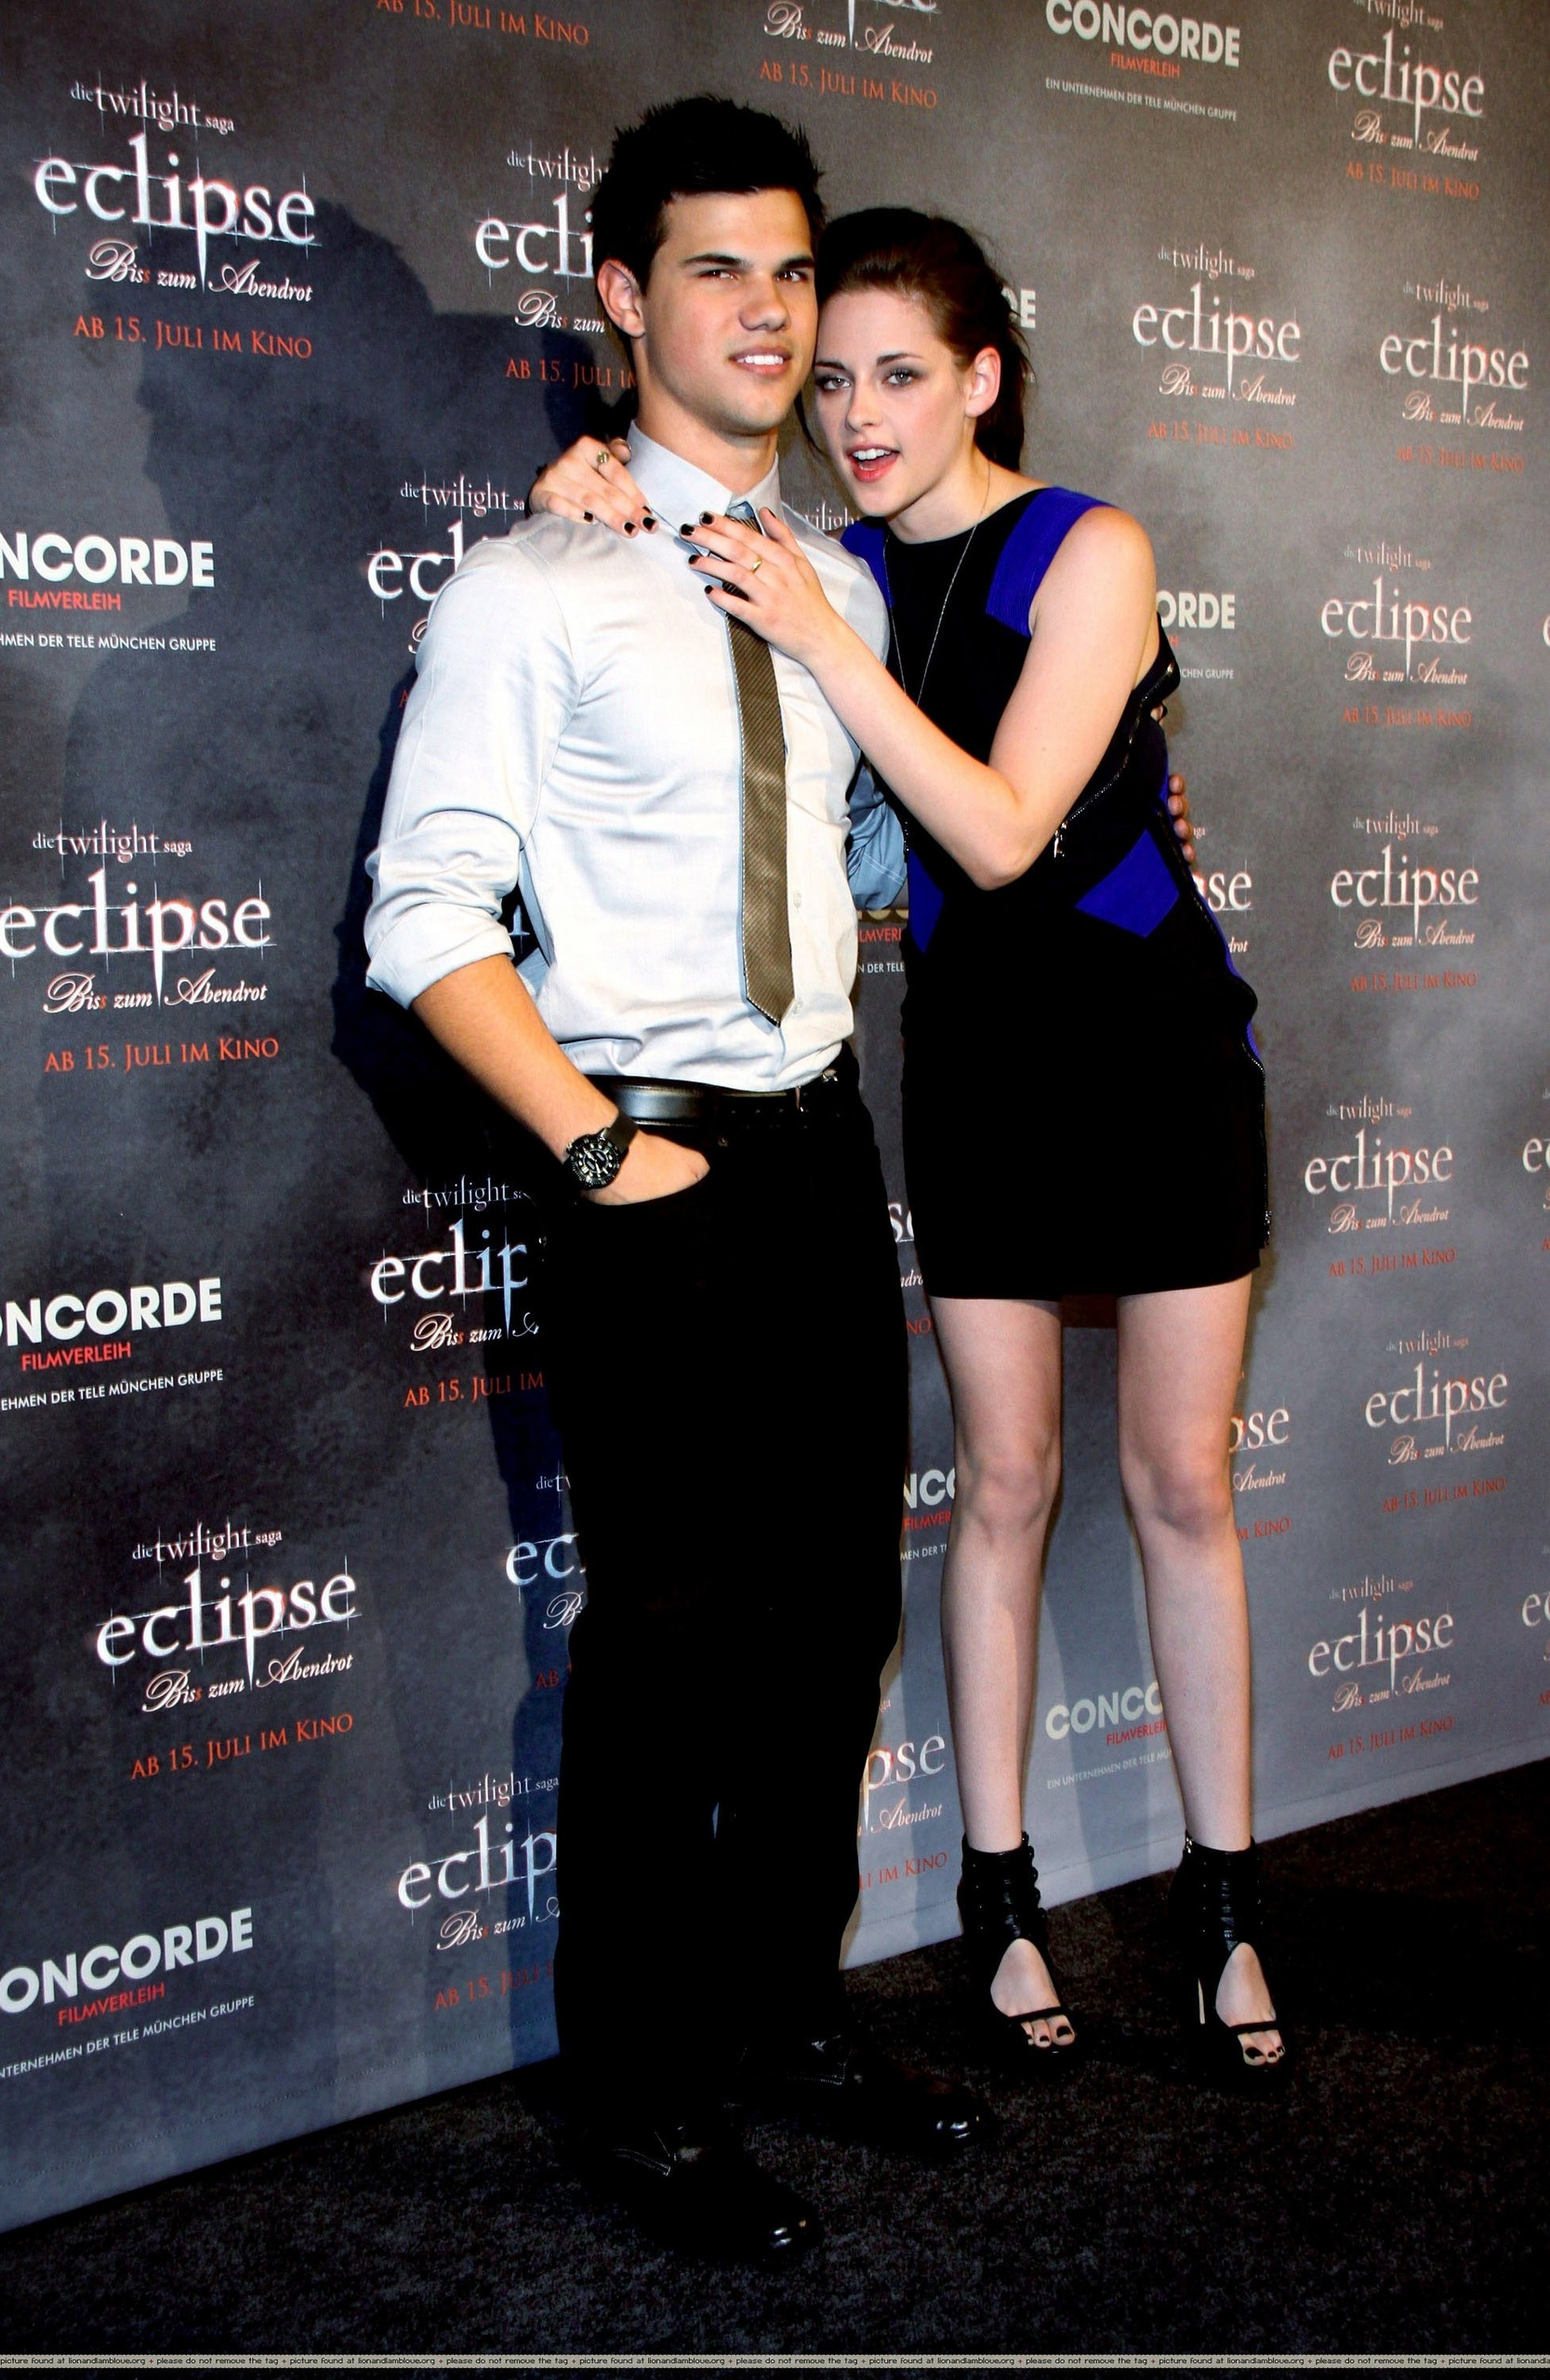 The Twilight Saga Eclipse Germany Photocall